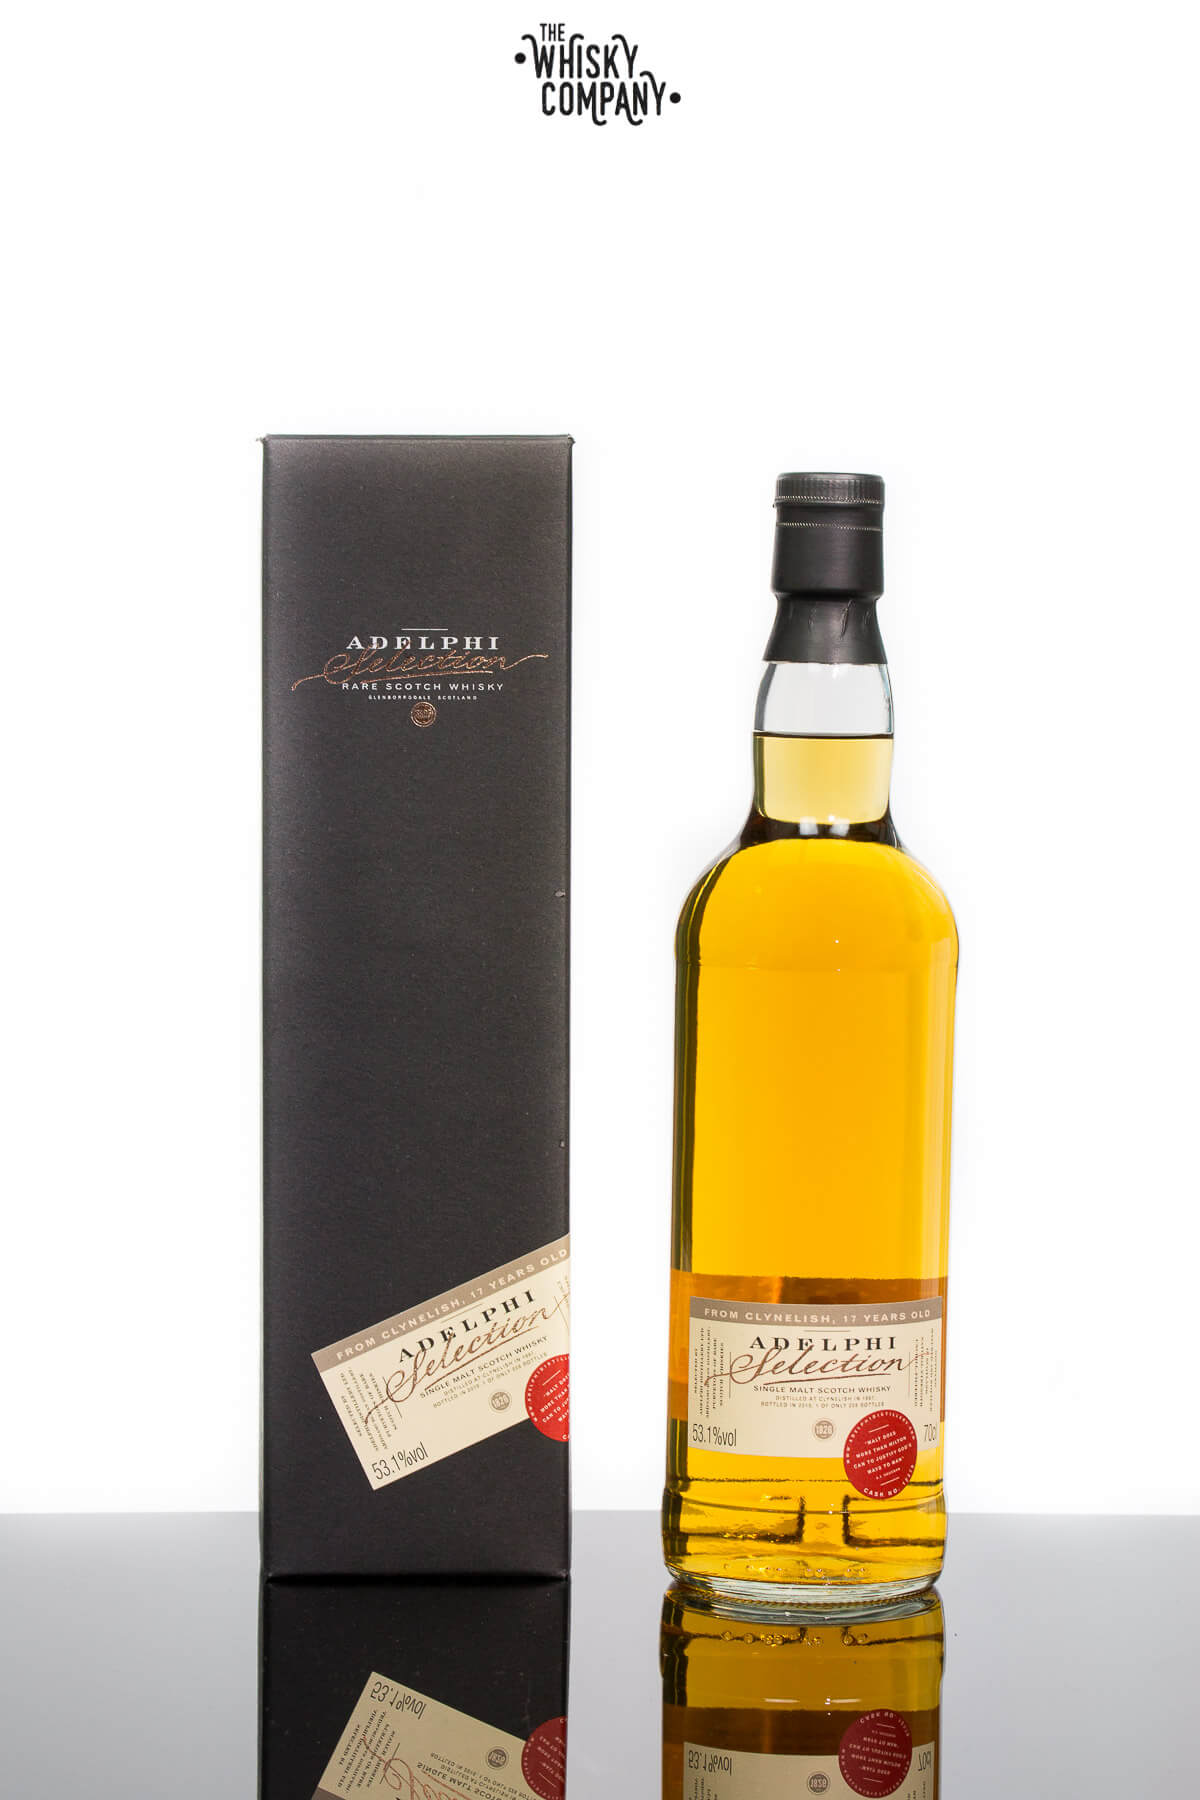 Adelphi 1997 Clynelish 17 Years Old Highland Single Malt Scotch Whisky